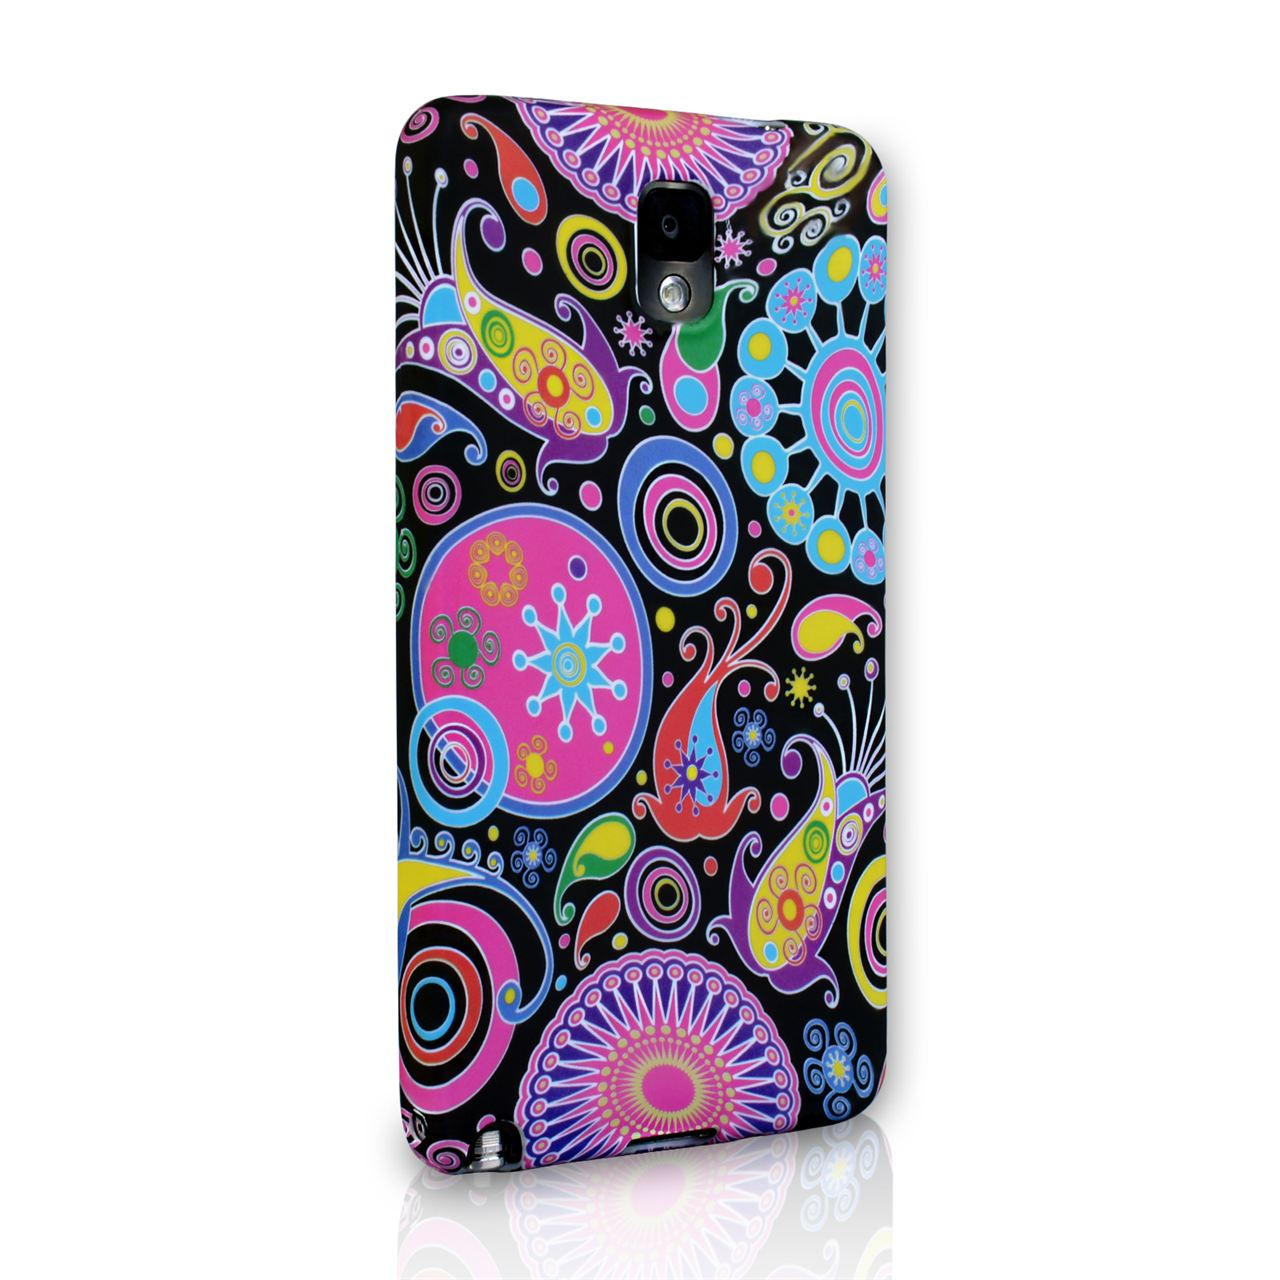 YouSave Accessories Samsung Galaxy Note 3 Jellyfish Silcone Gel Case